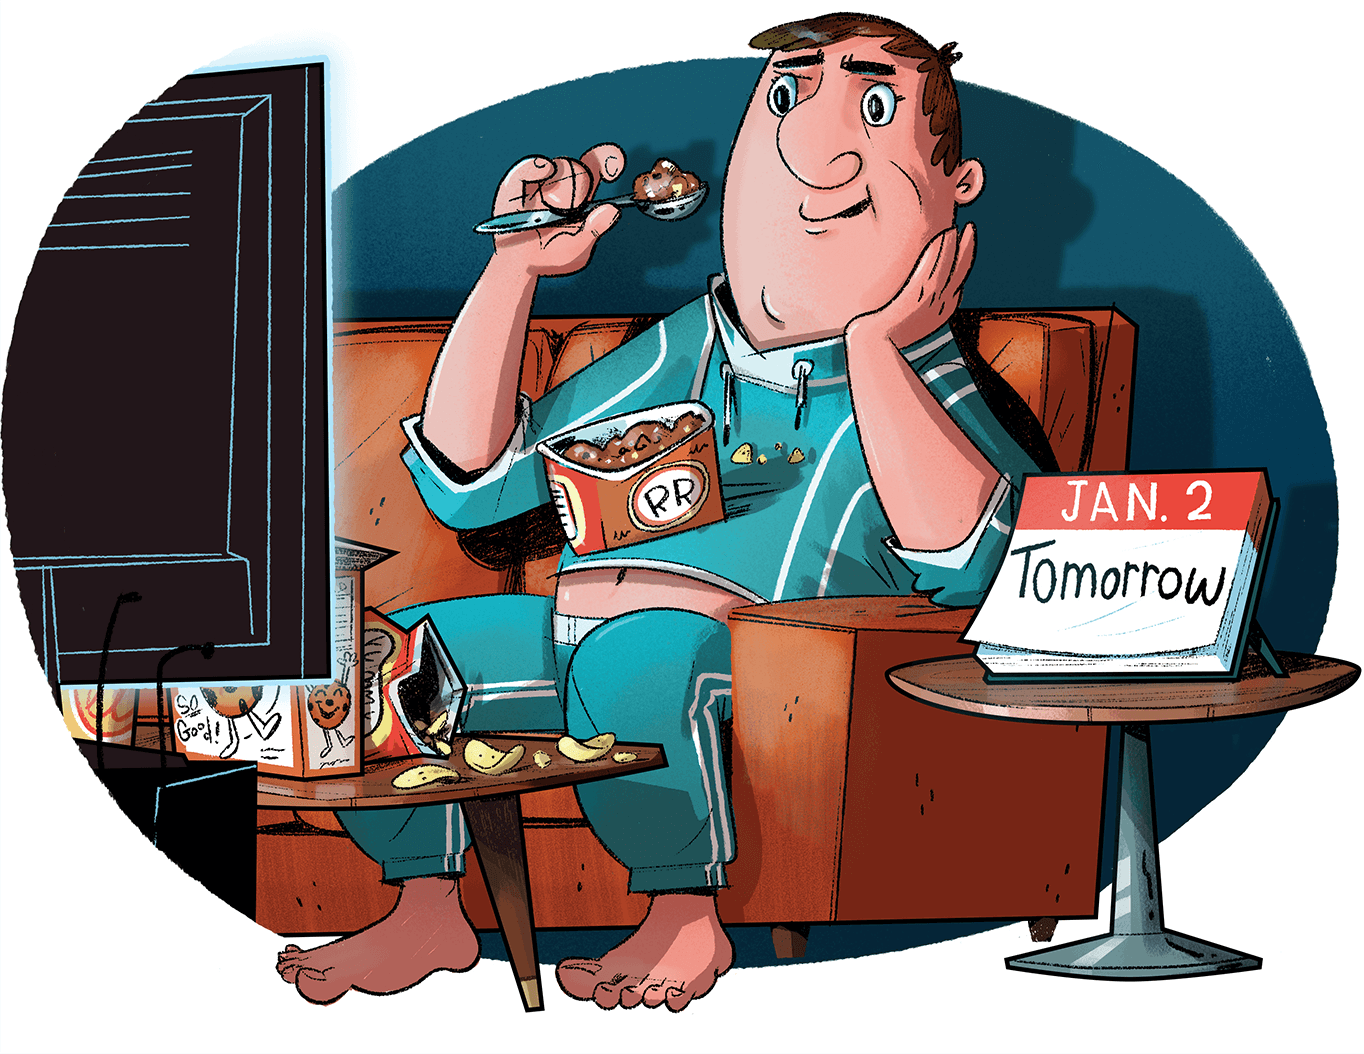 Illustration of man sitting on couch eating ice cream